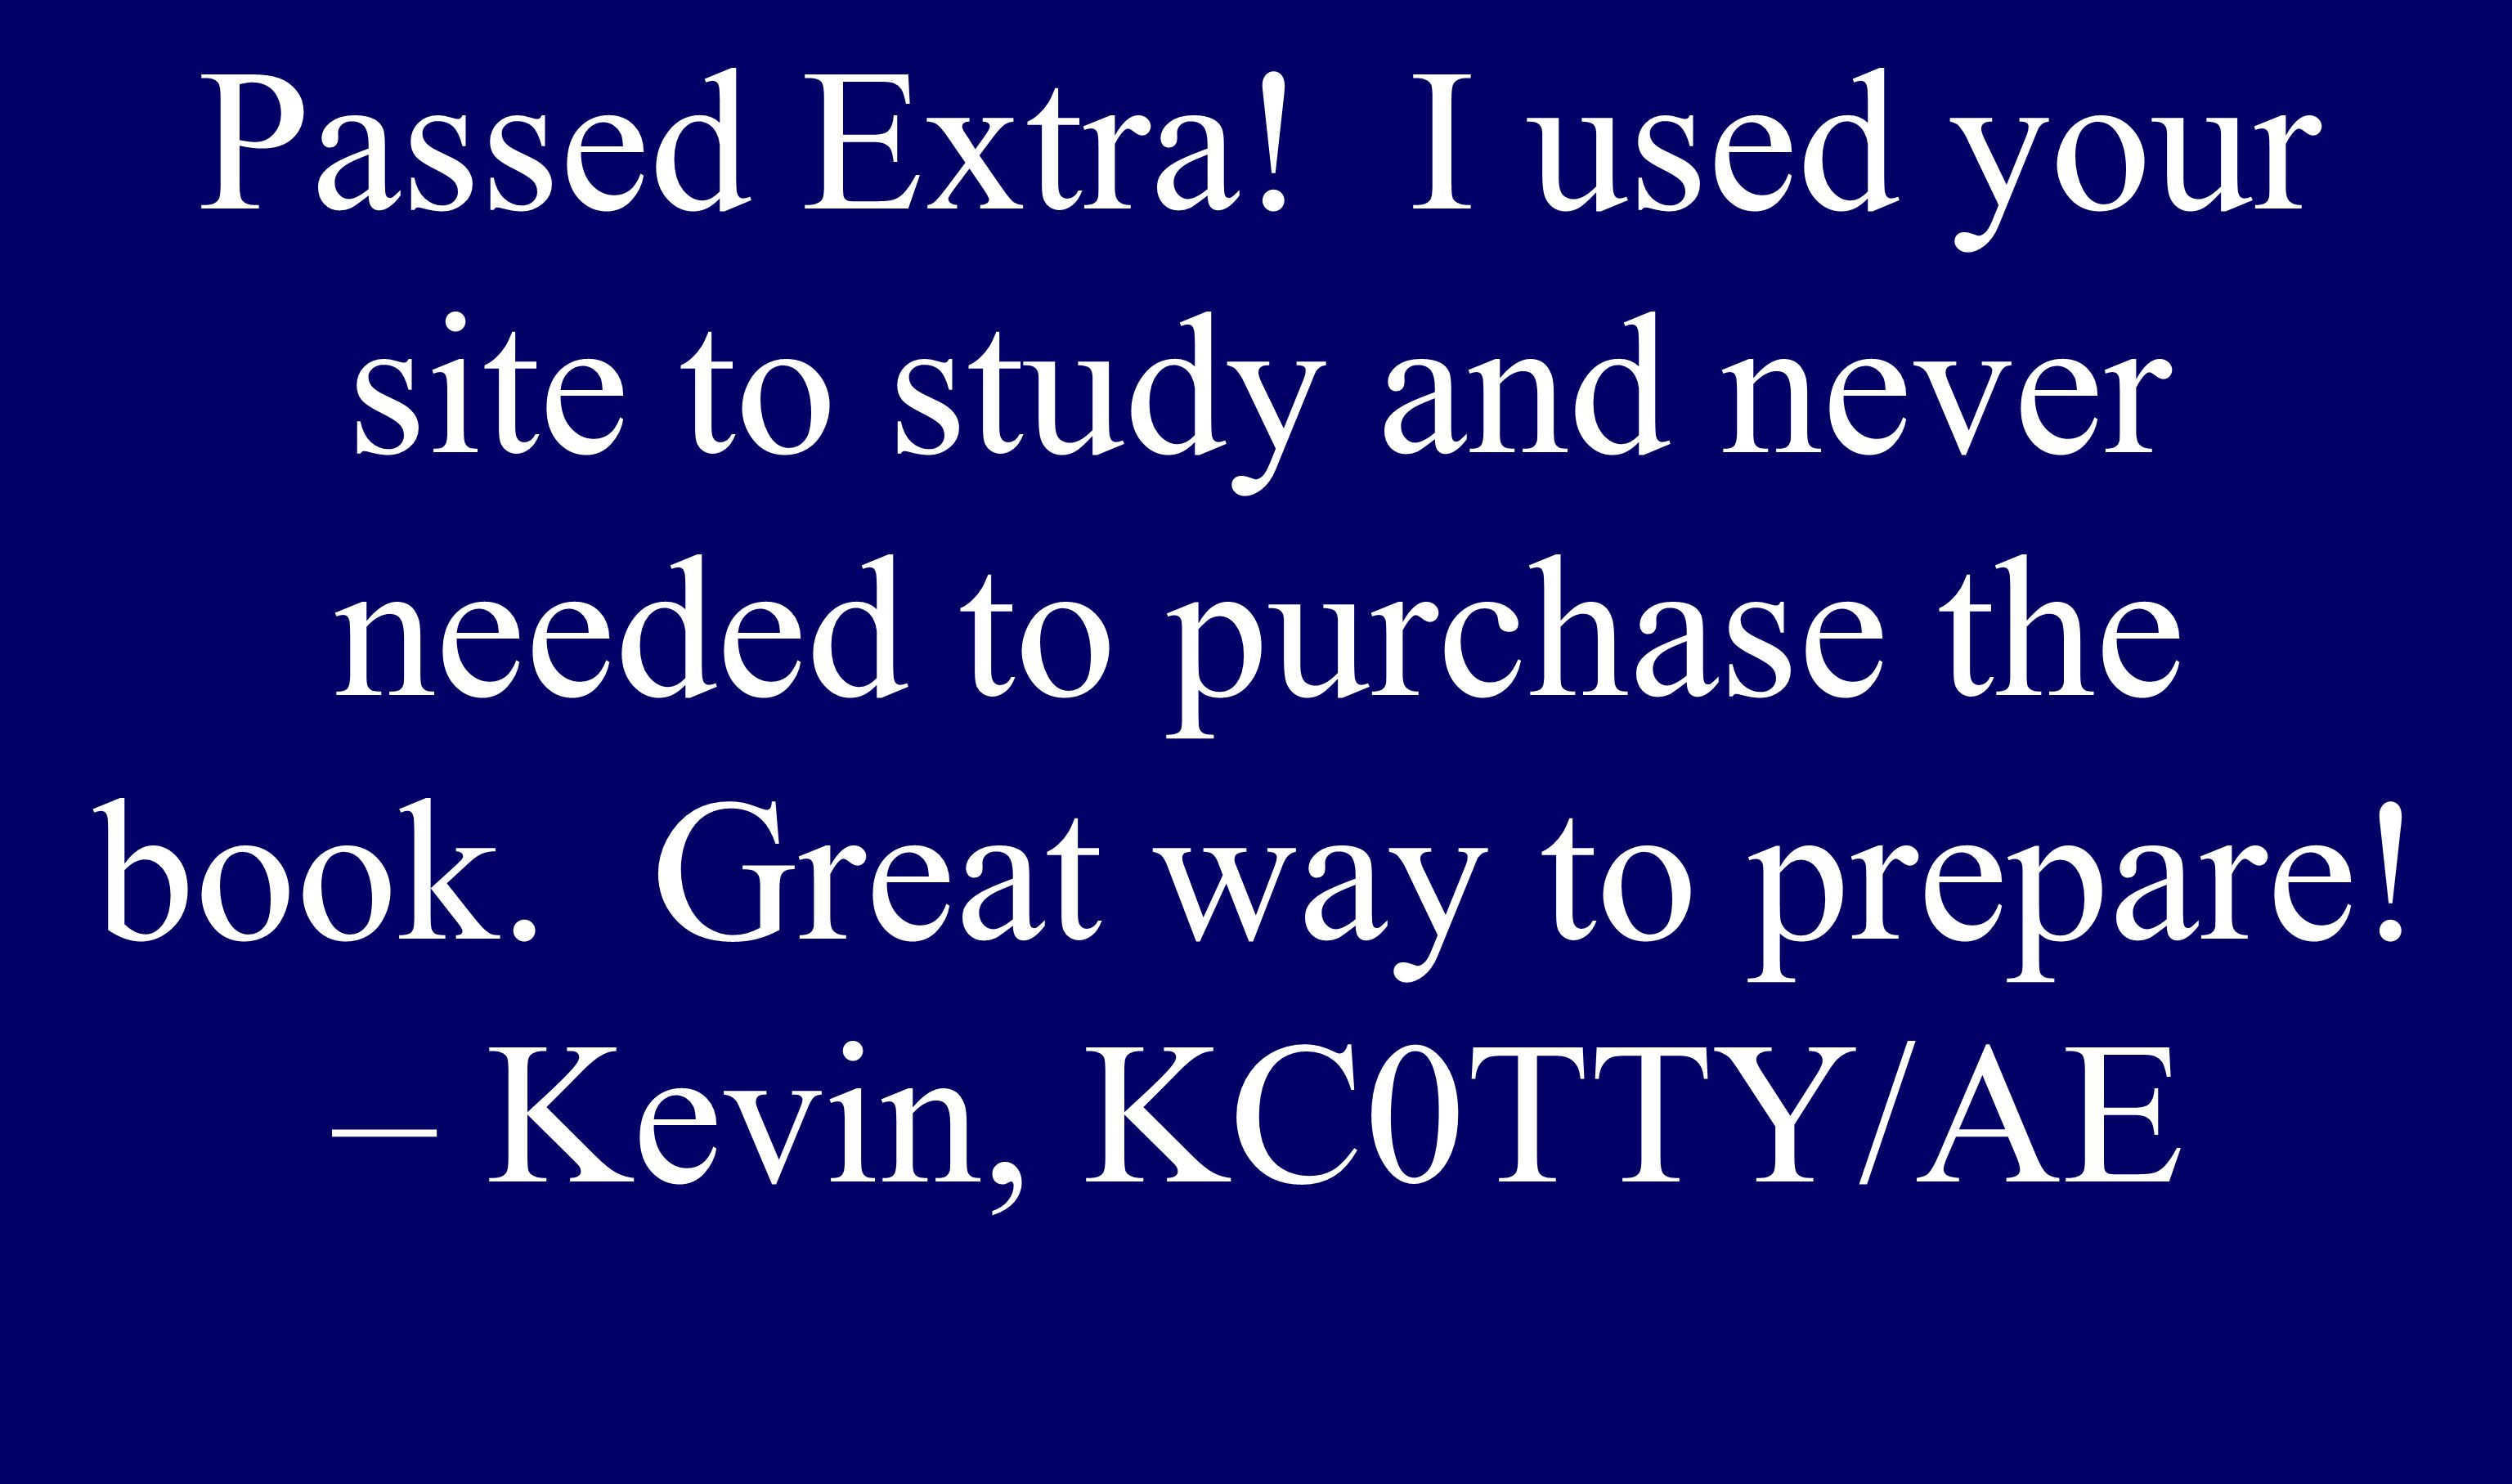 Passed Extra. I used your site to study and never needed to purchase the book.